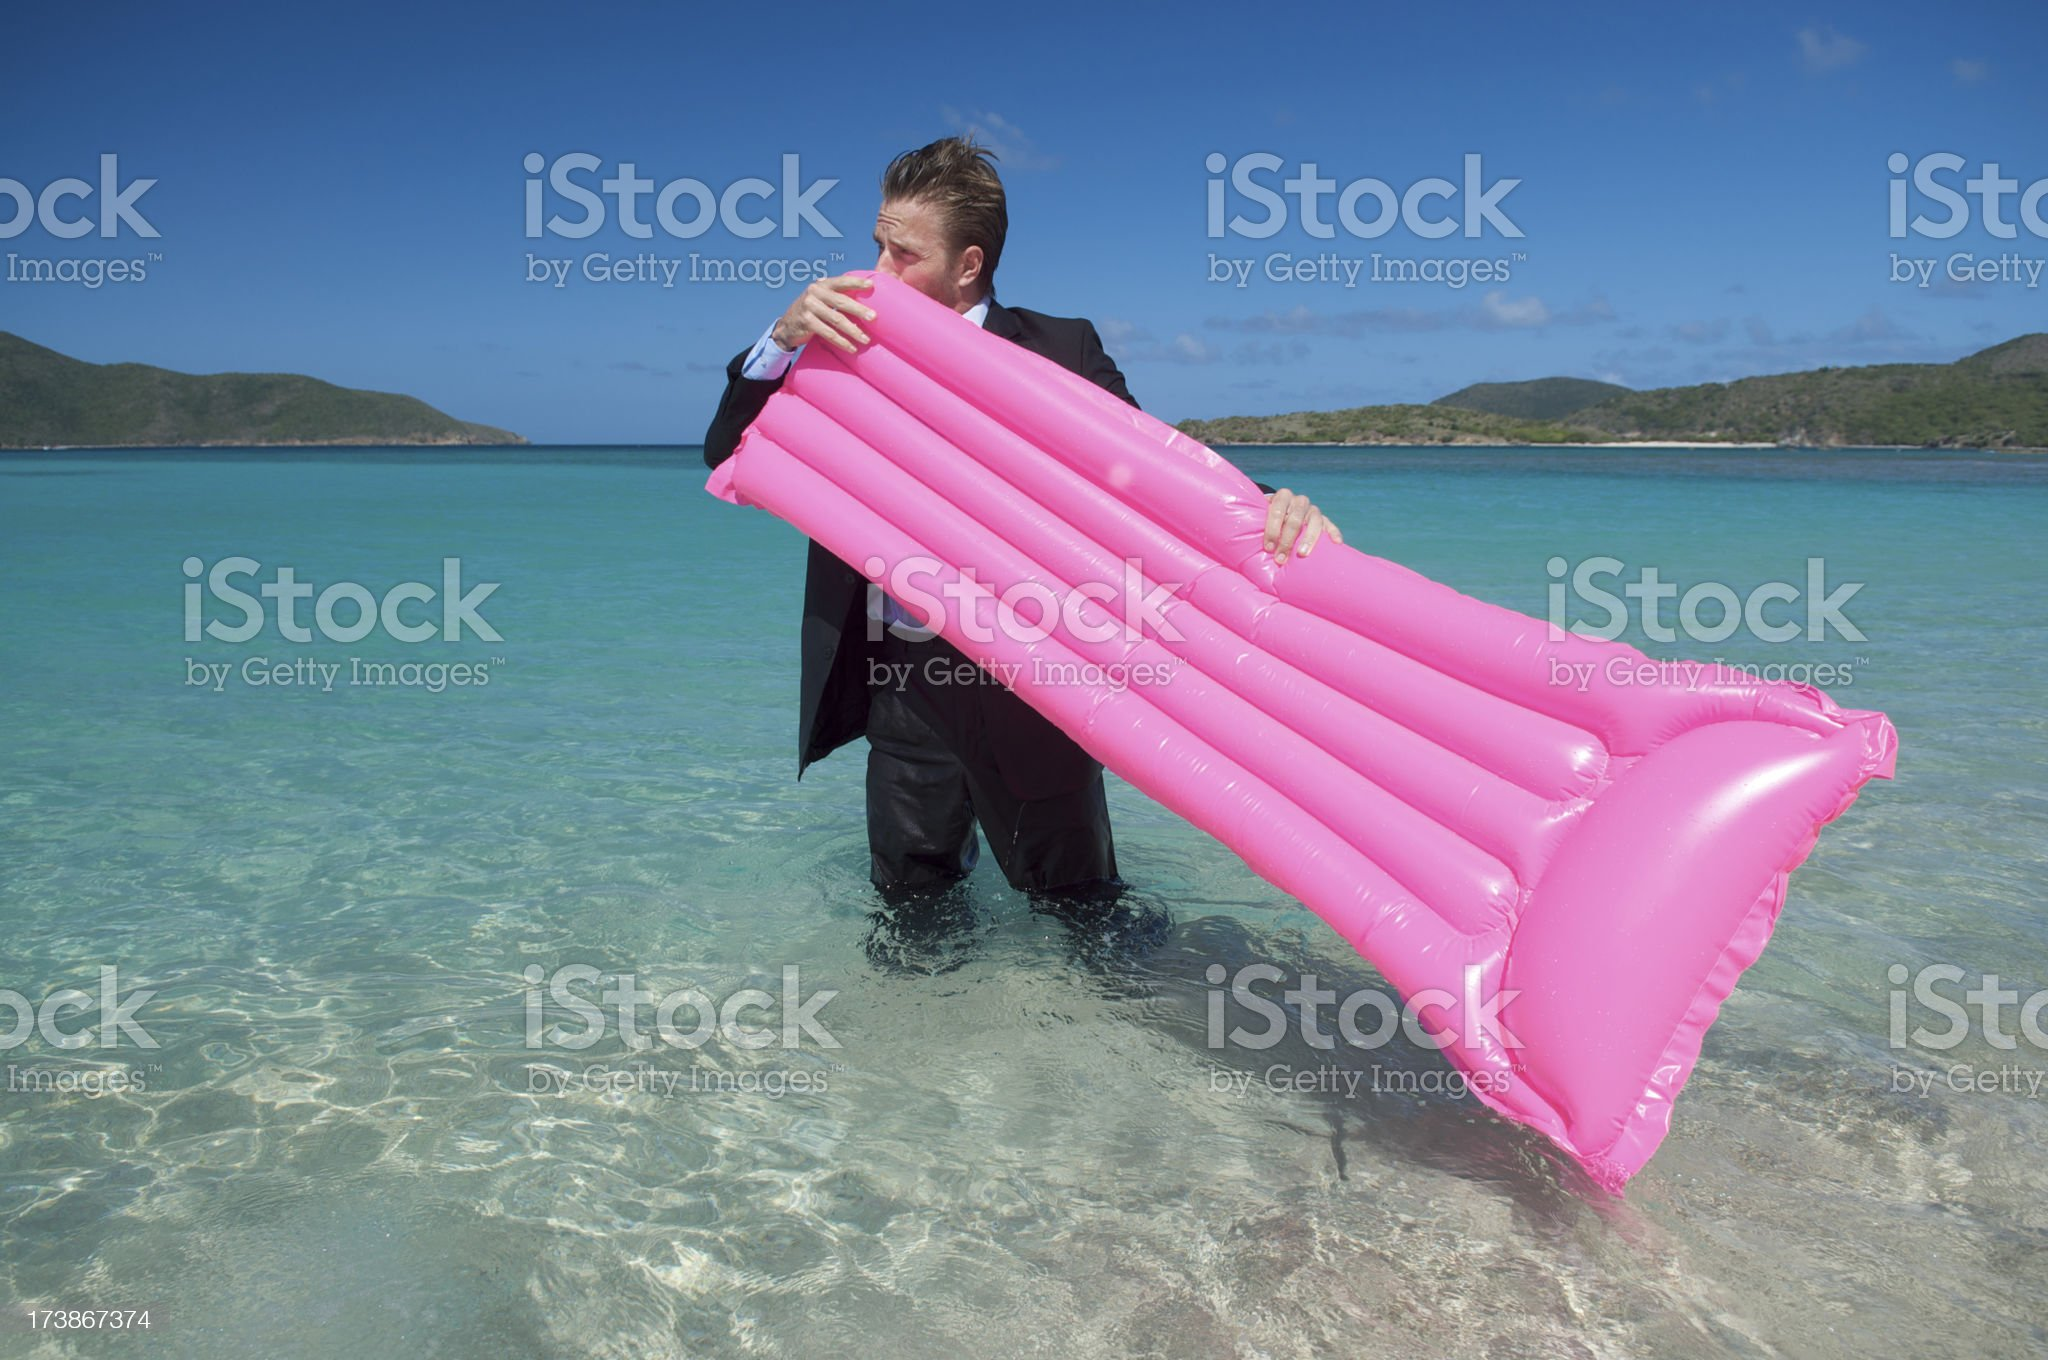 Businessman Blows Up Pink Lilo in Sea royalty-free stock photo